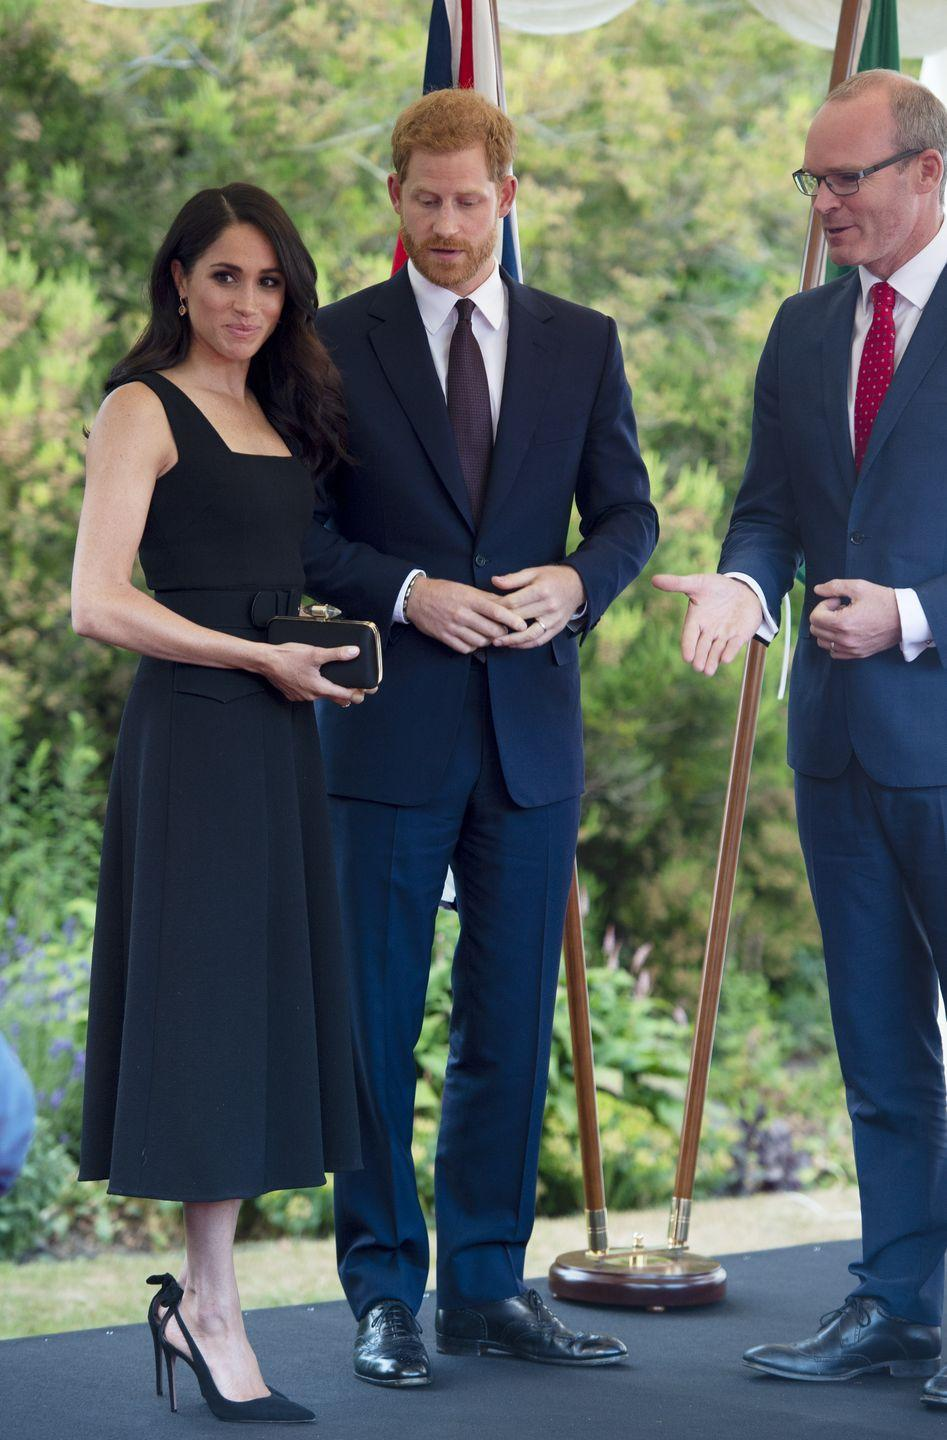 <p>For a garden party at the British Ambassador's residence in Dublin, Ireland, the Duchess of Sussex wore a black dress by Emilia Wickstead with an A-line silhouette, square neckline, and belt, July 2018.</p>